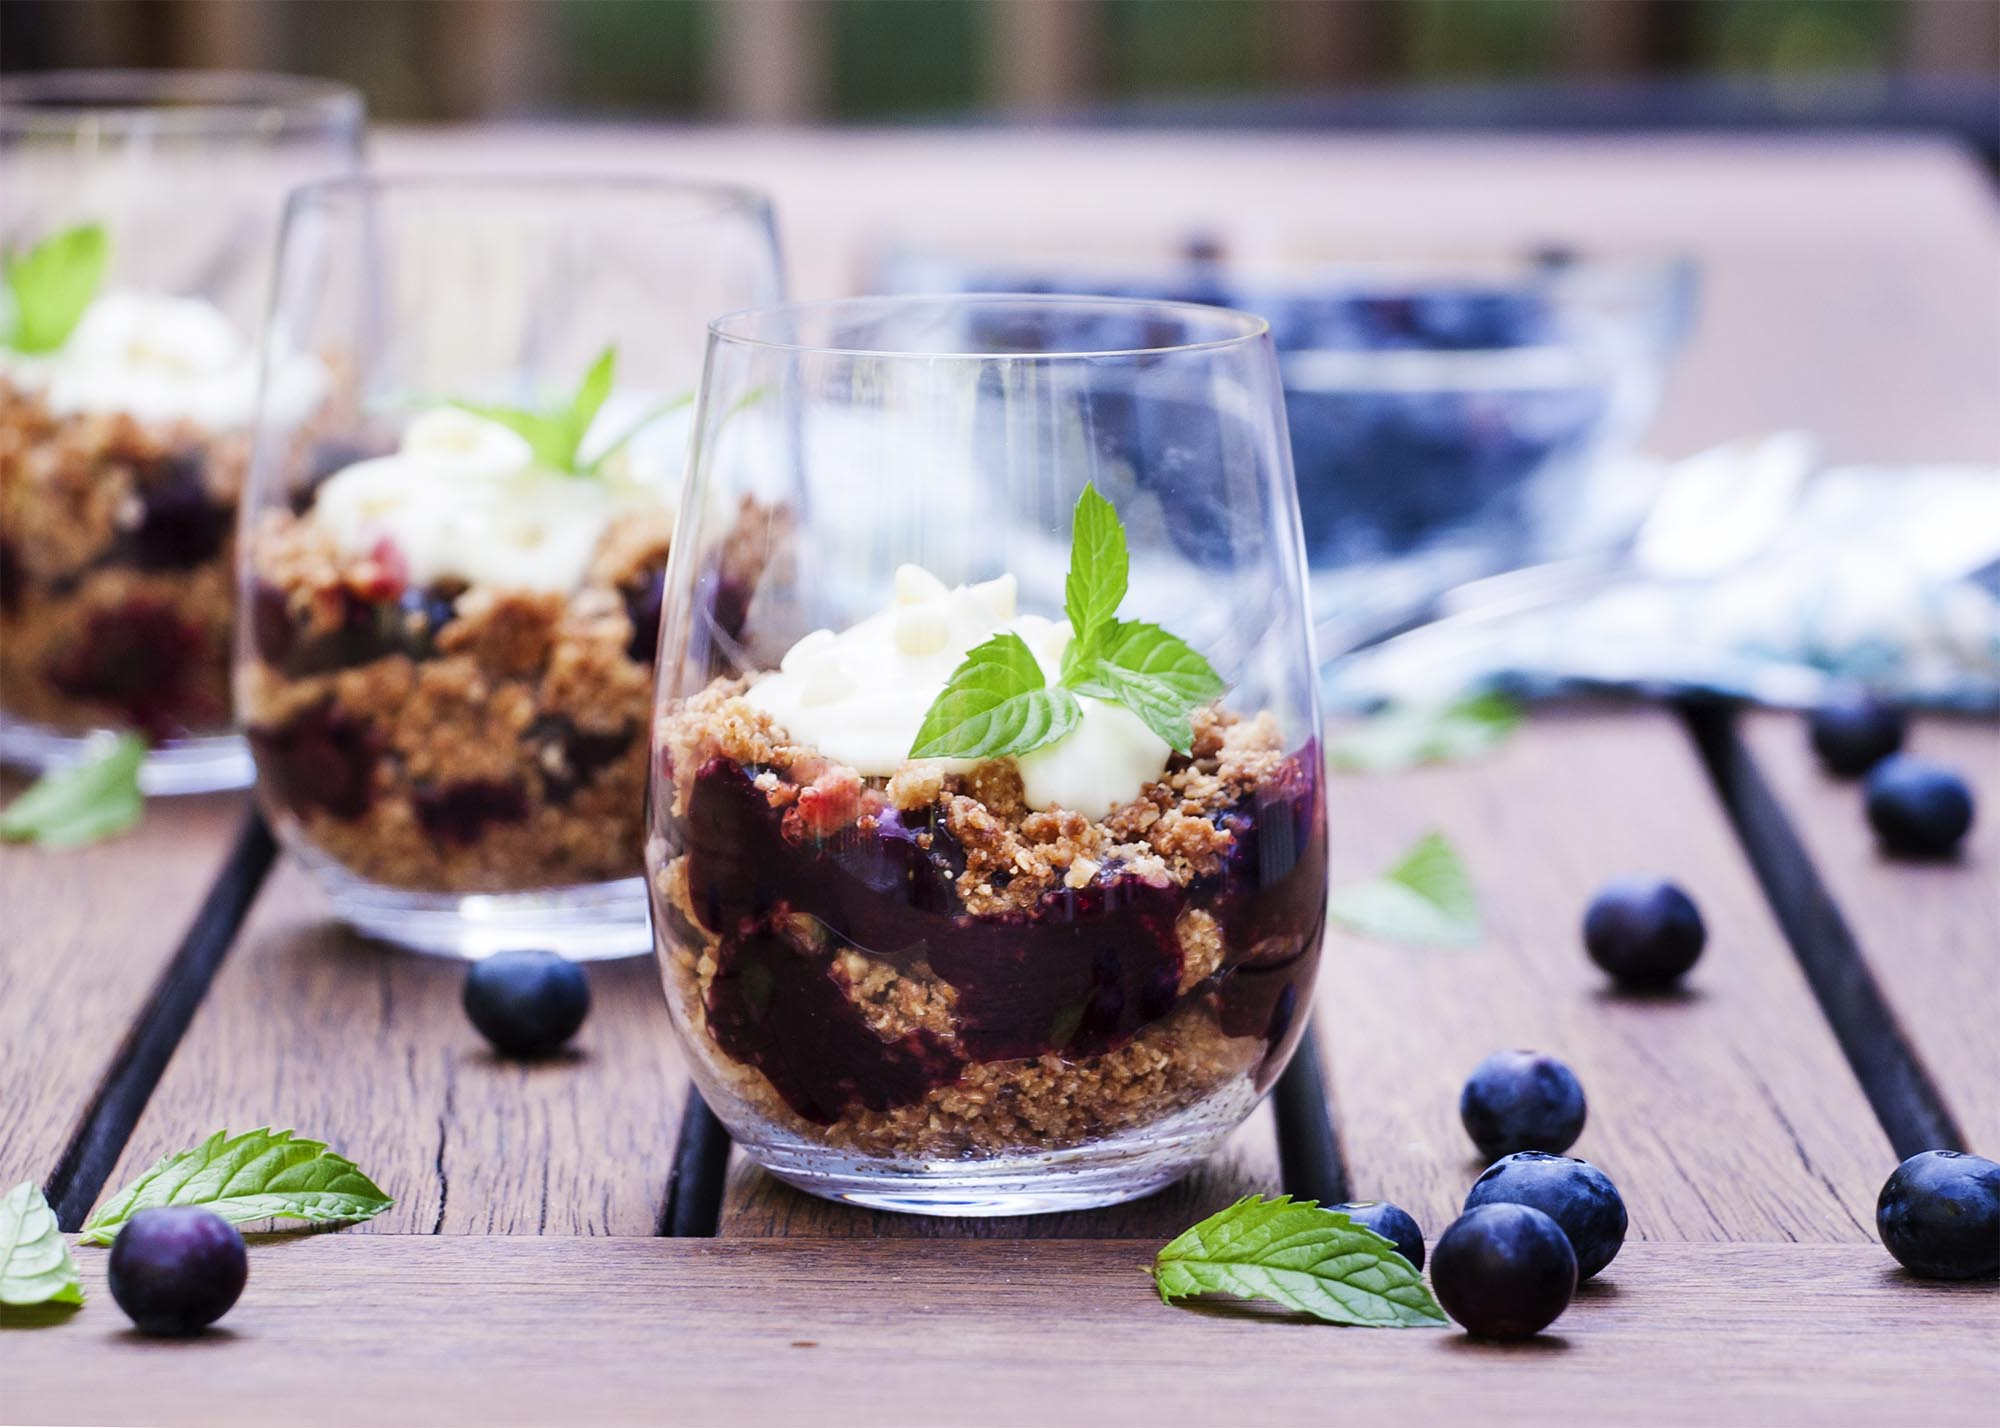 A group of blueberry parfait cups set out on a table with blueberries and mint leaves scattered about.